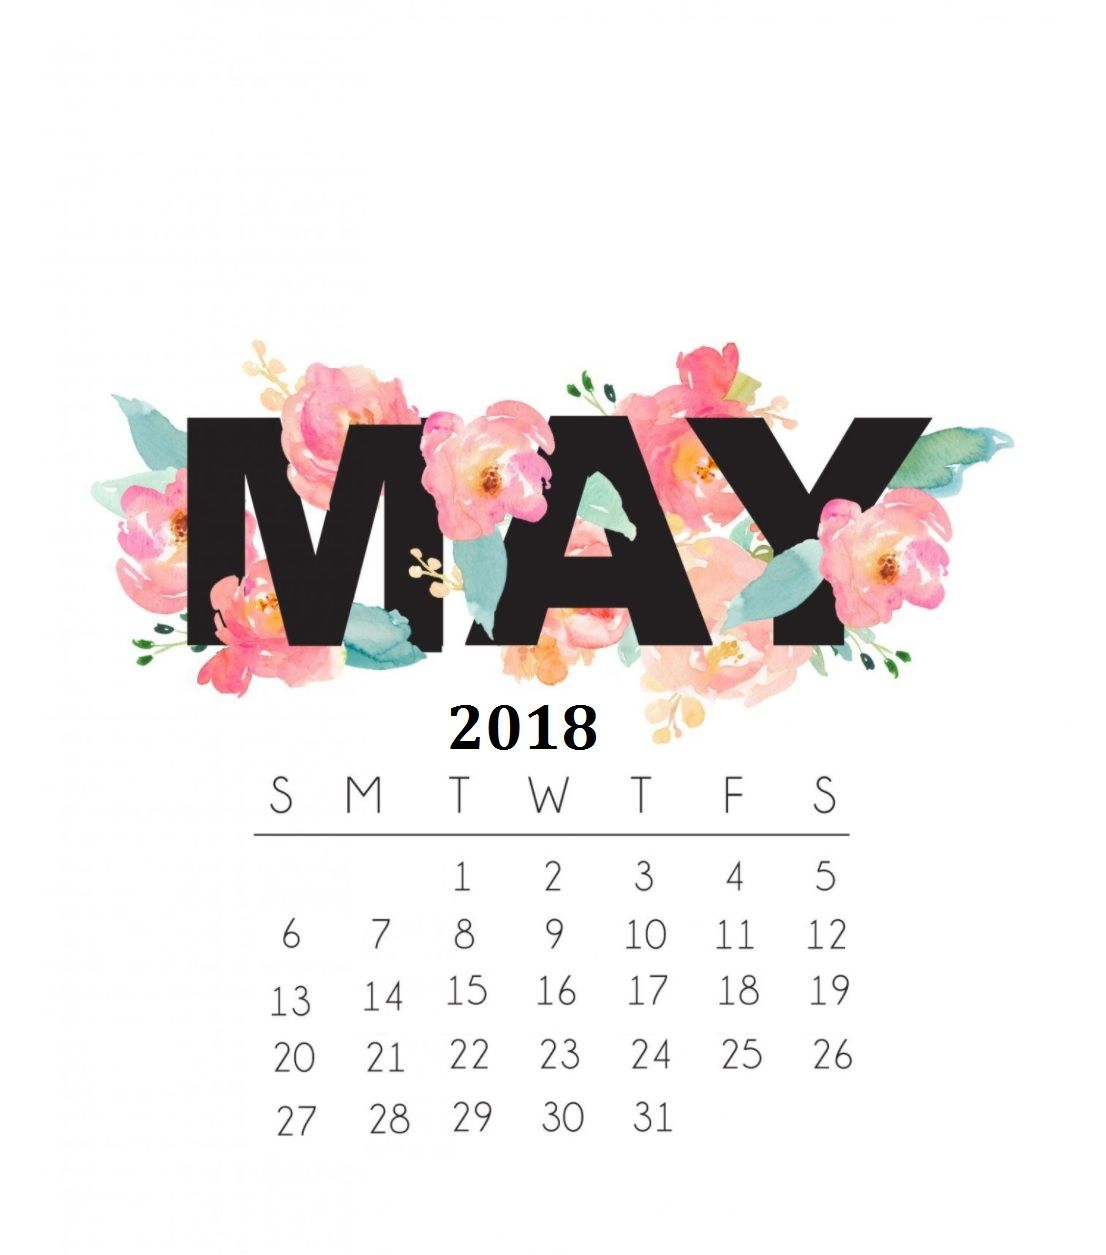 May 2018 Calendar Wallpaper Hd Calendar 2018 Pinterest